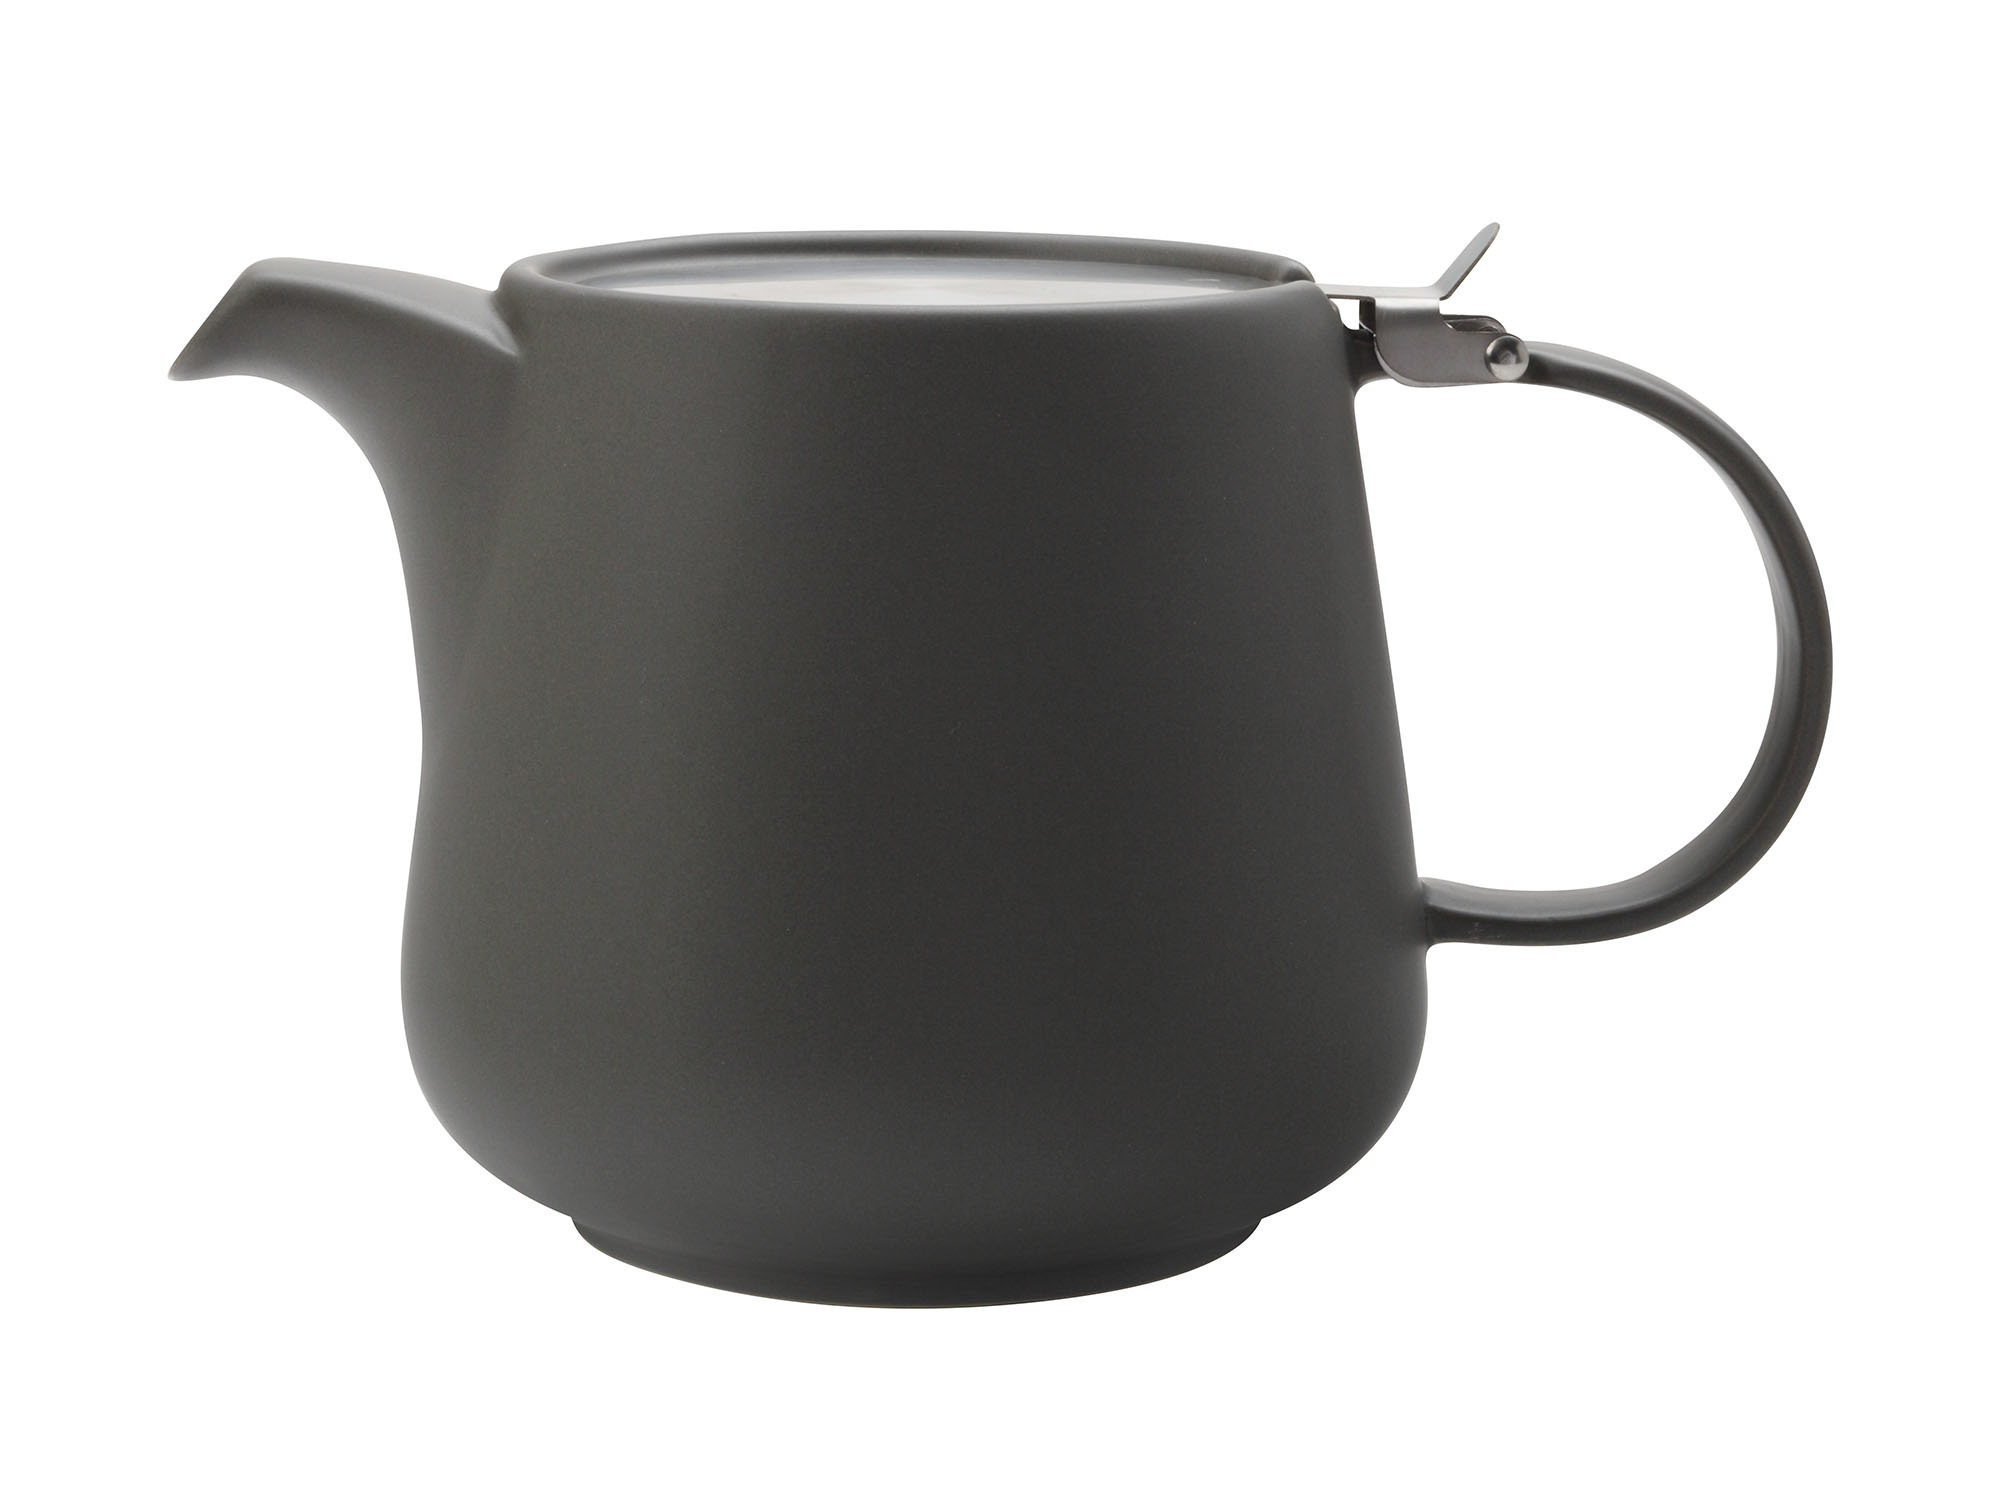 Maxwell & Williams Tint 1200Ml Teapot Charcoal